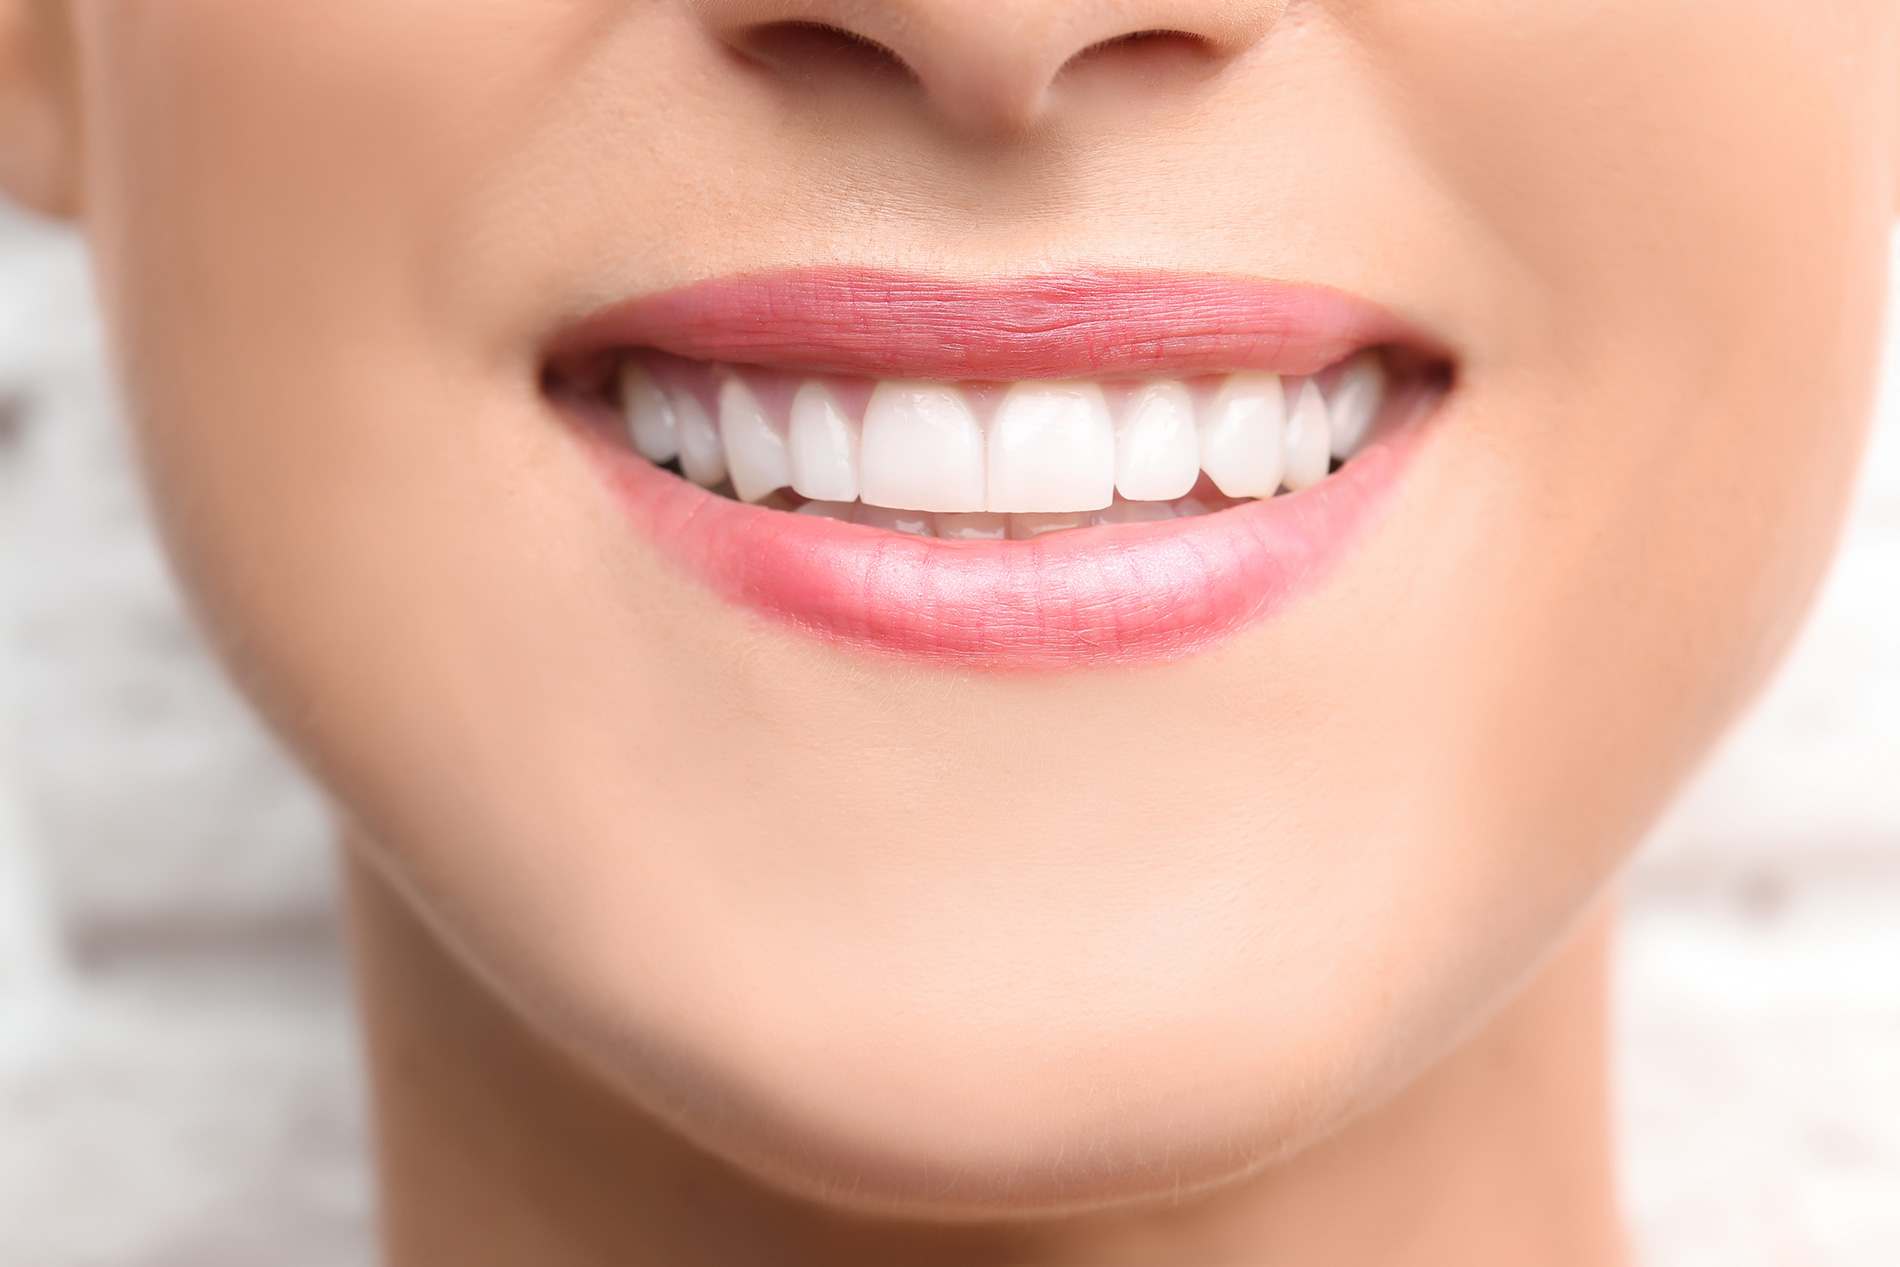 woman with beautiful smiling